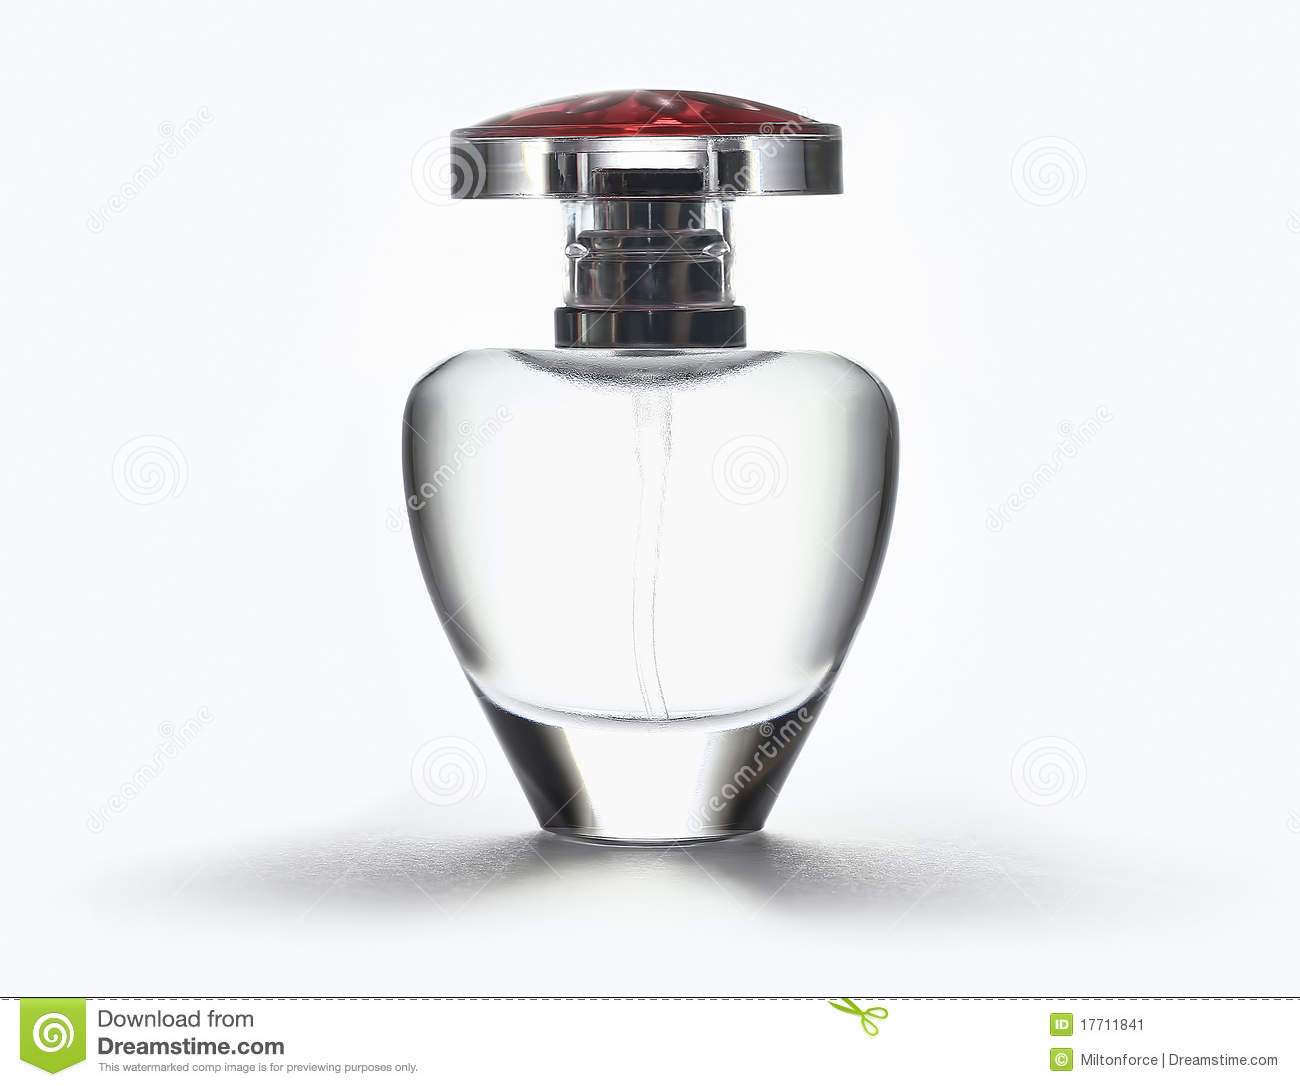 Perfume Bottle Stock Image - Image: 17711841 Nail Polish Bottles Clipart